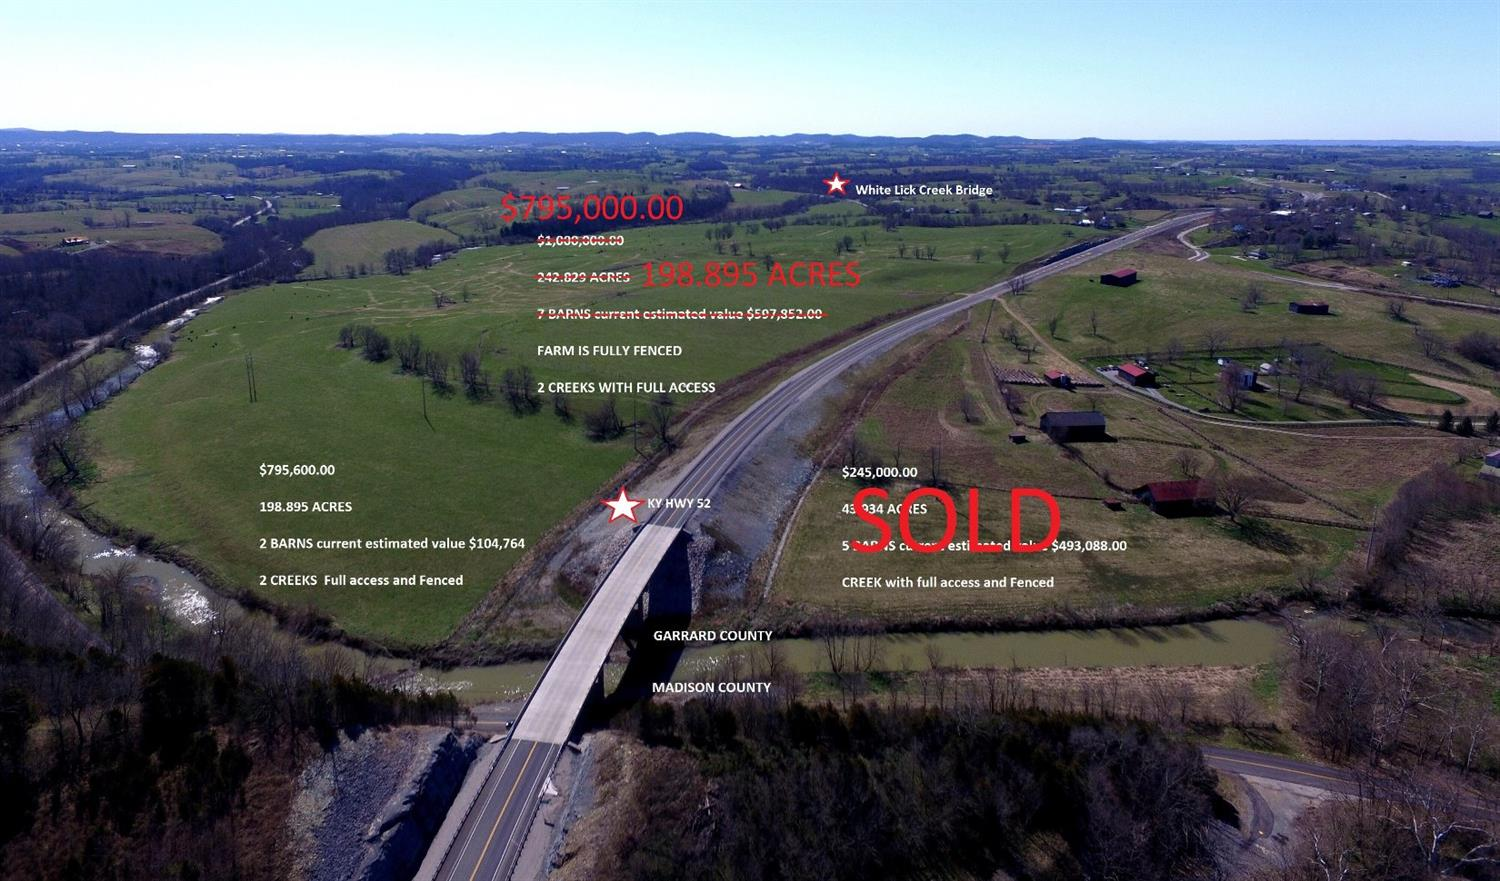 $795,600.00%20198.895%20ACRES,%202%20BARNS%20valued%20at%20$104,764.00,%20FENCED,%202%20CREEKS%20FULL%20ACCESS!%20%20Will%20subdivide!